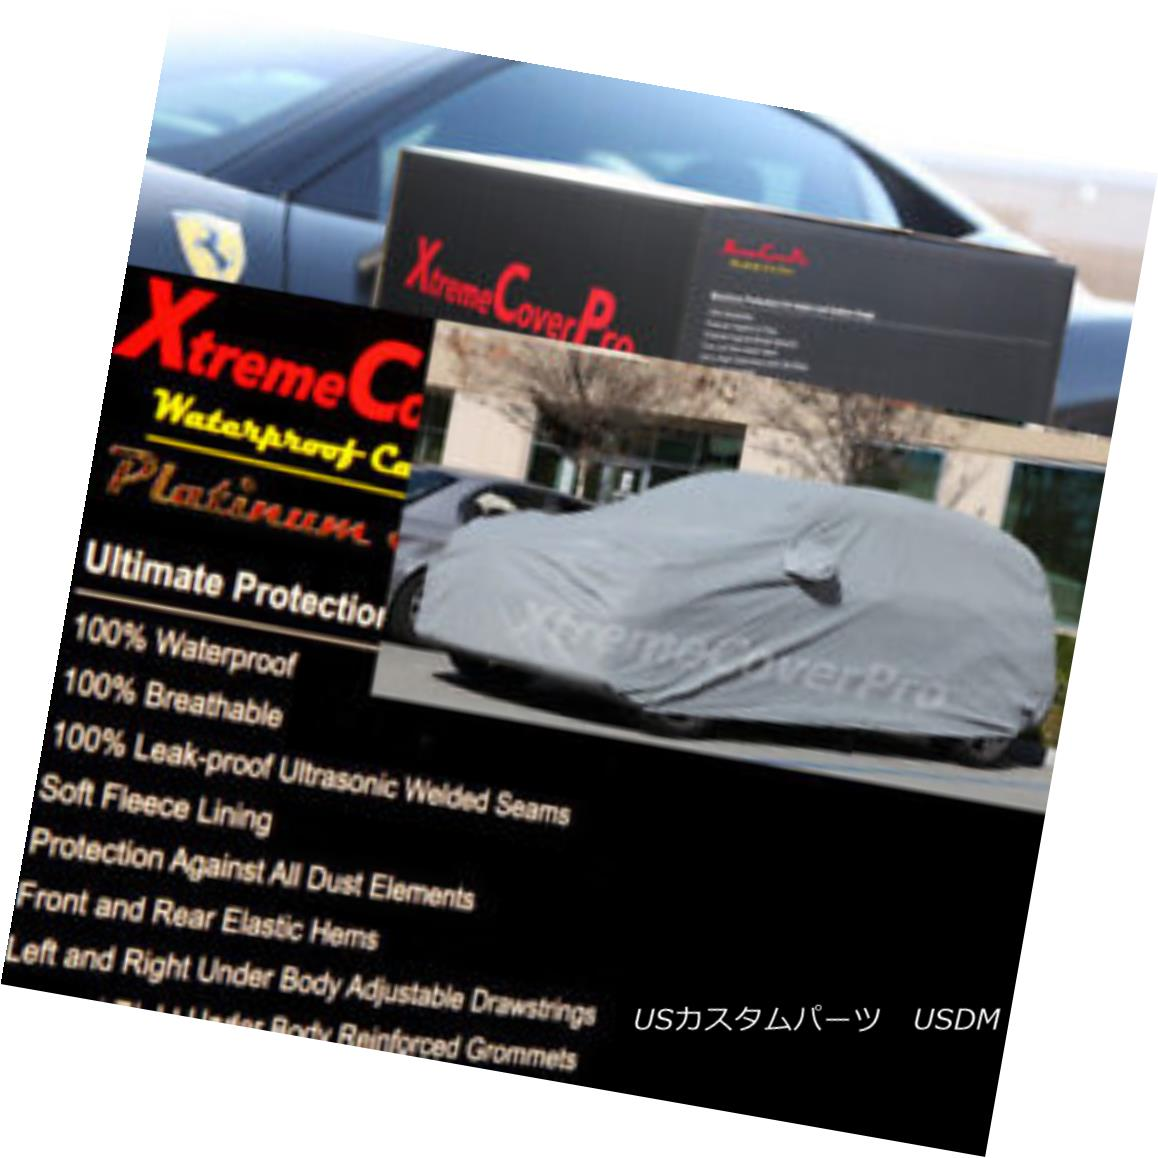 カーカバー WATERPROOF CAR COVER W/MIRROR POCKET GRAY FOR 2018 2017 2016 2015 INFINITI QX80 2018年防水カーカバーW / MIRRORポケットグレー2017 2016 2015 INFINITI QX80